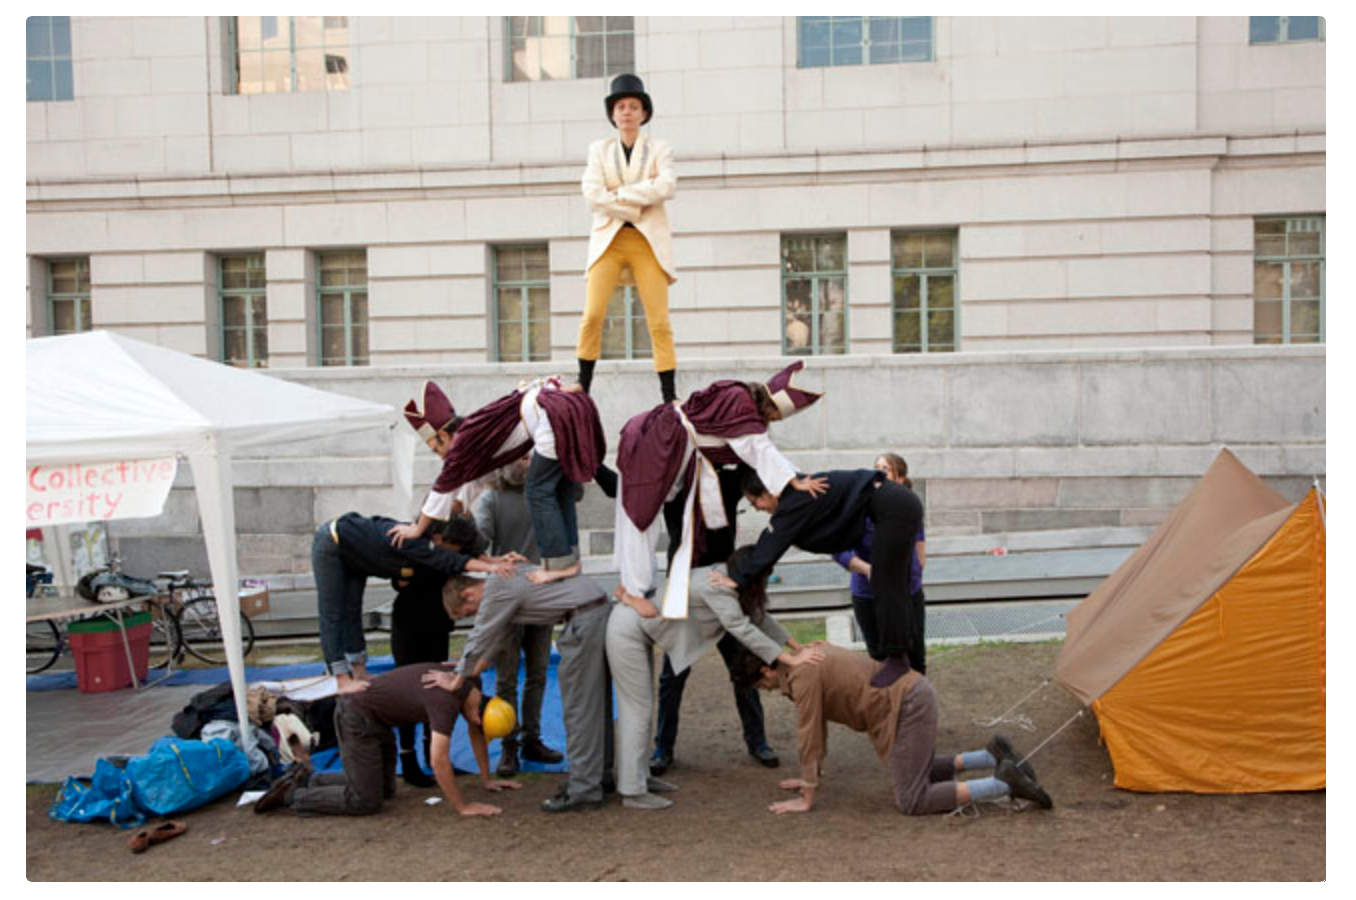 Robby Herbst, Pyramid of Capitalist System, 2011. Performance at LA City Hall during Occupation 10/11. Photo: Lisa Anne Auerbach